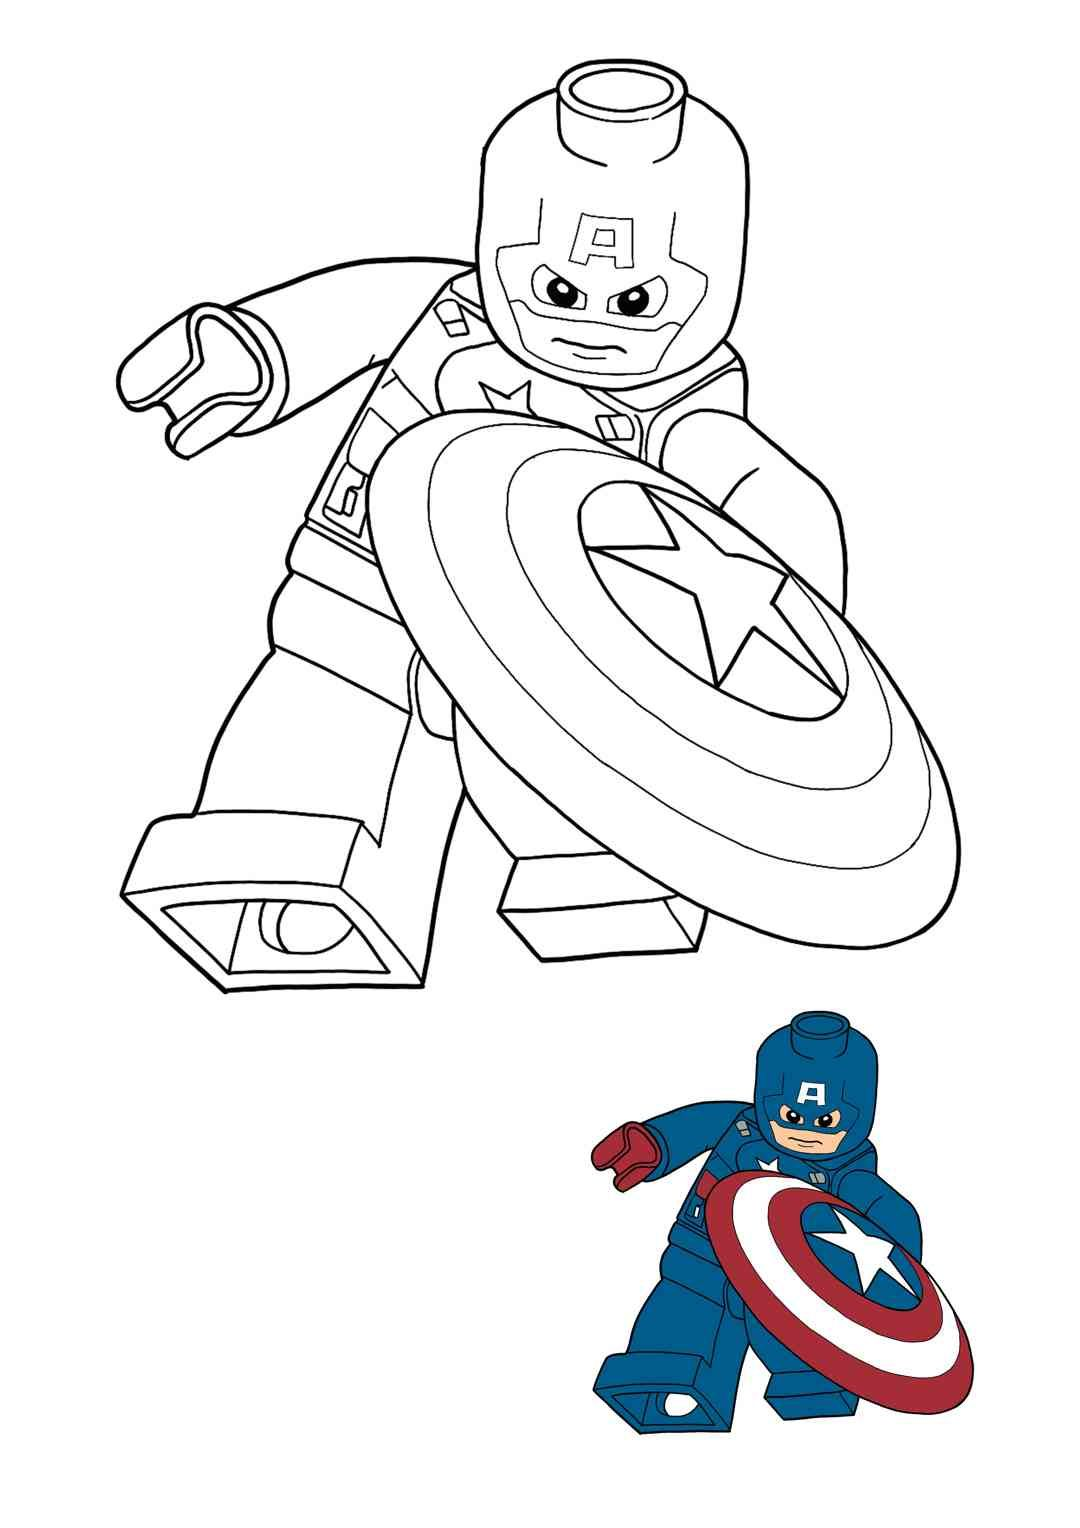 Lego Captain America Coloring Pages Captain America Coloring Pages Free Printable Coloring Sheets Coloring Pages